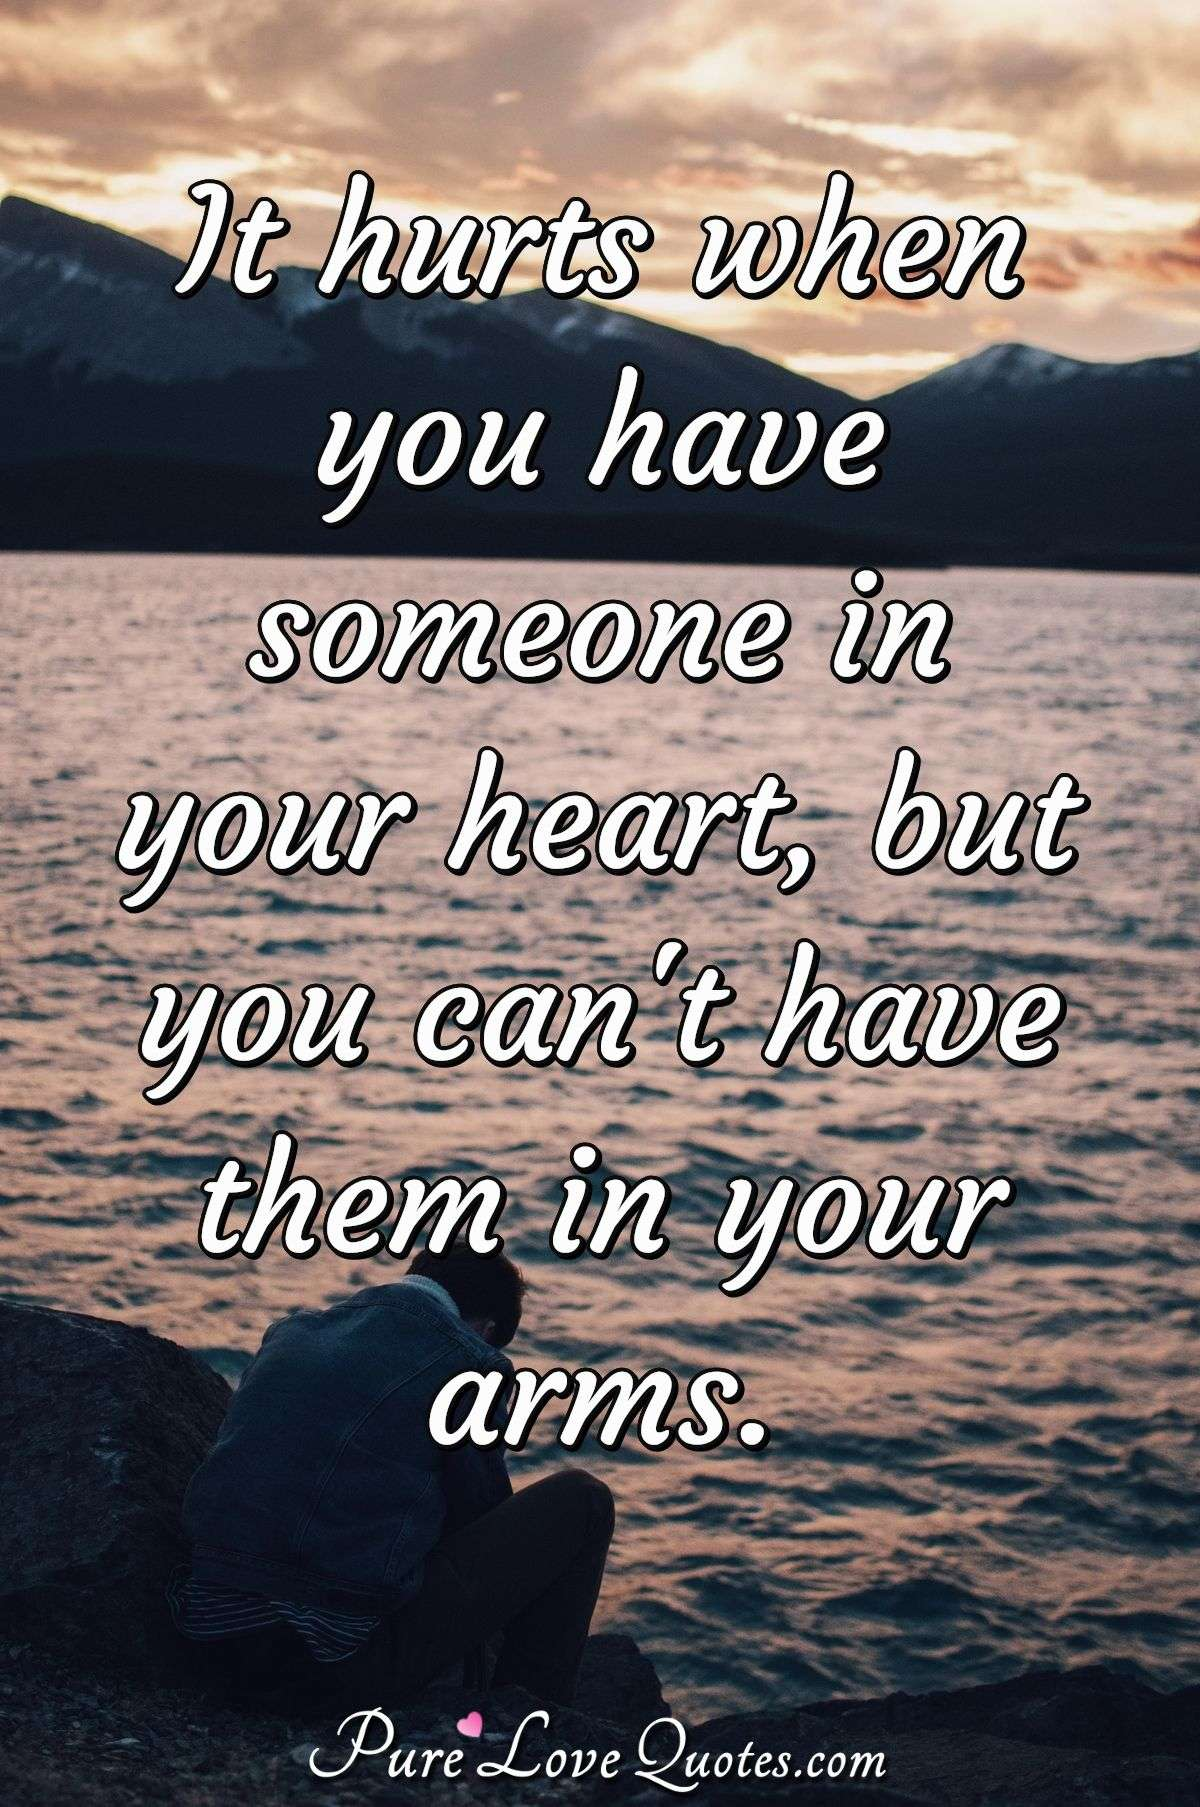 Quotes About Loving Someone You Can T Be With : quotes, about, loving, someone, Hurts, Someone, Heart,, Can't, Your..., PureLoveQuotes